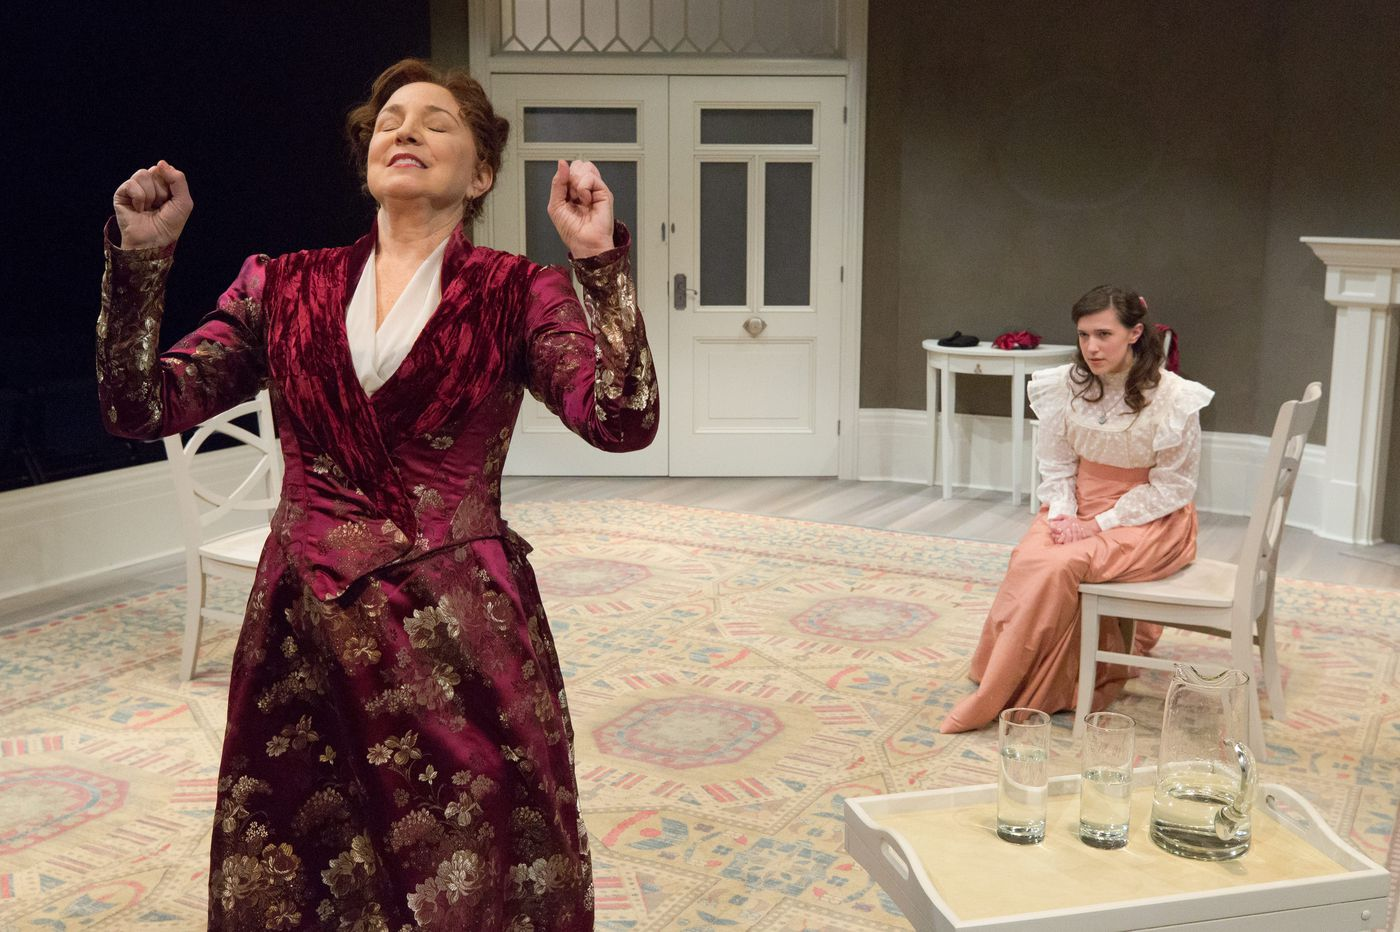 She's baaack: Nora returns in Arden's 'A Doll's House, Part 2'